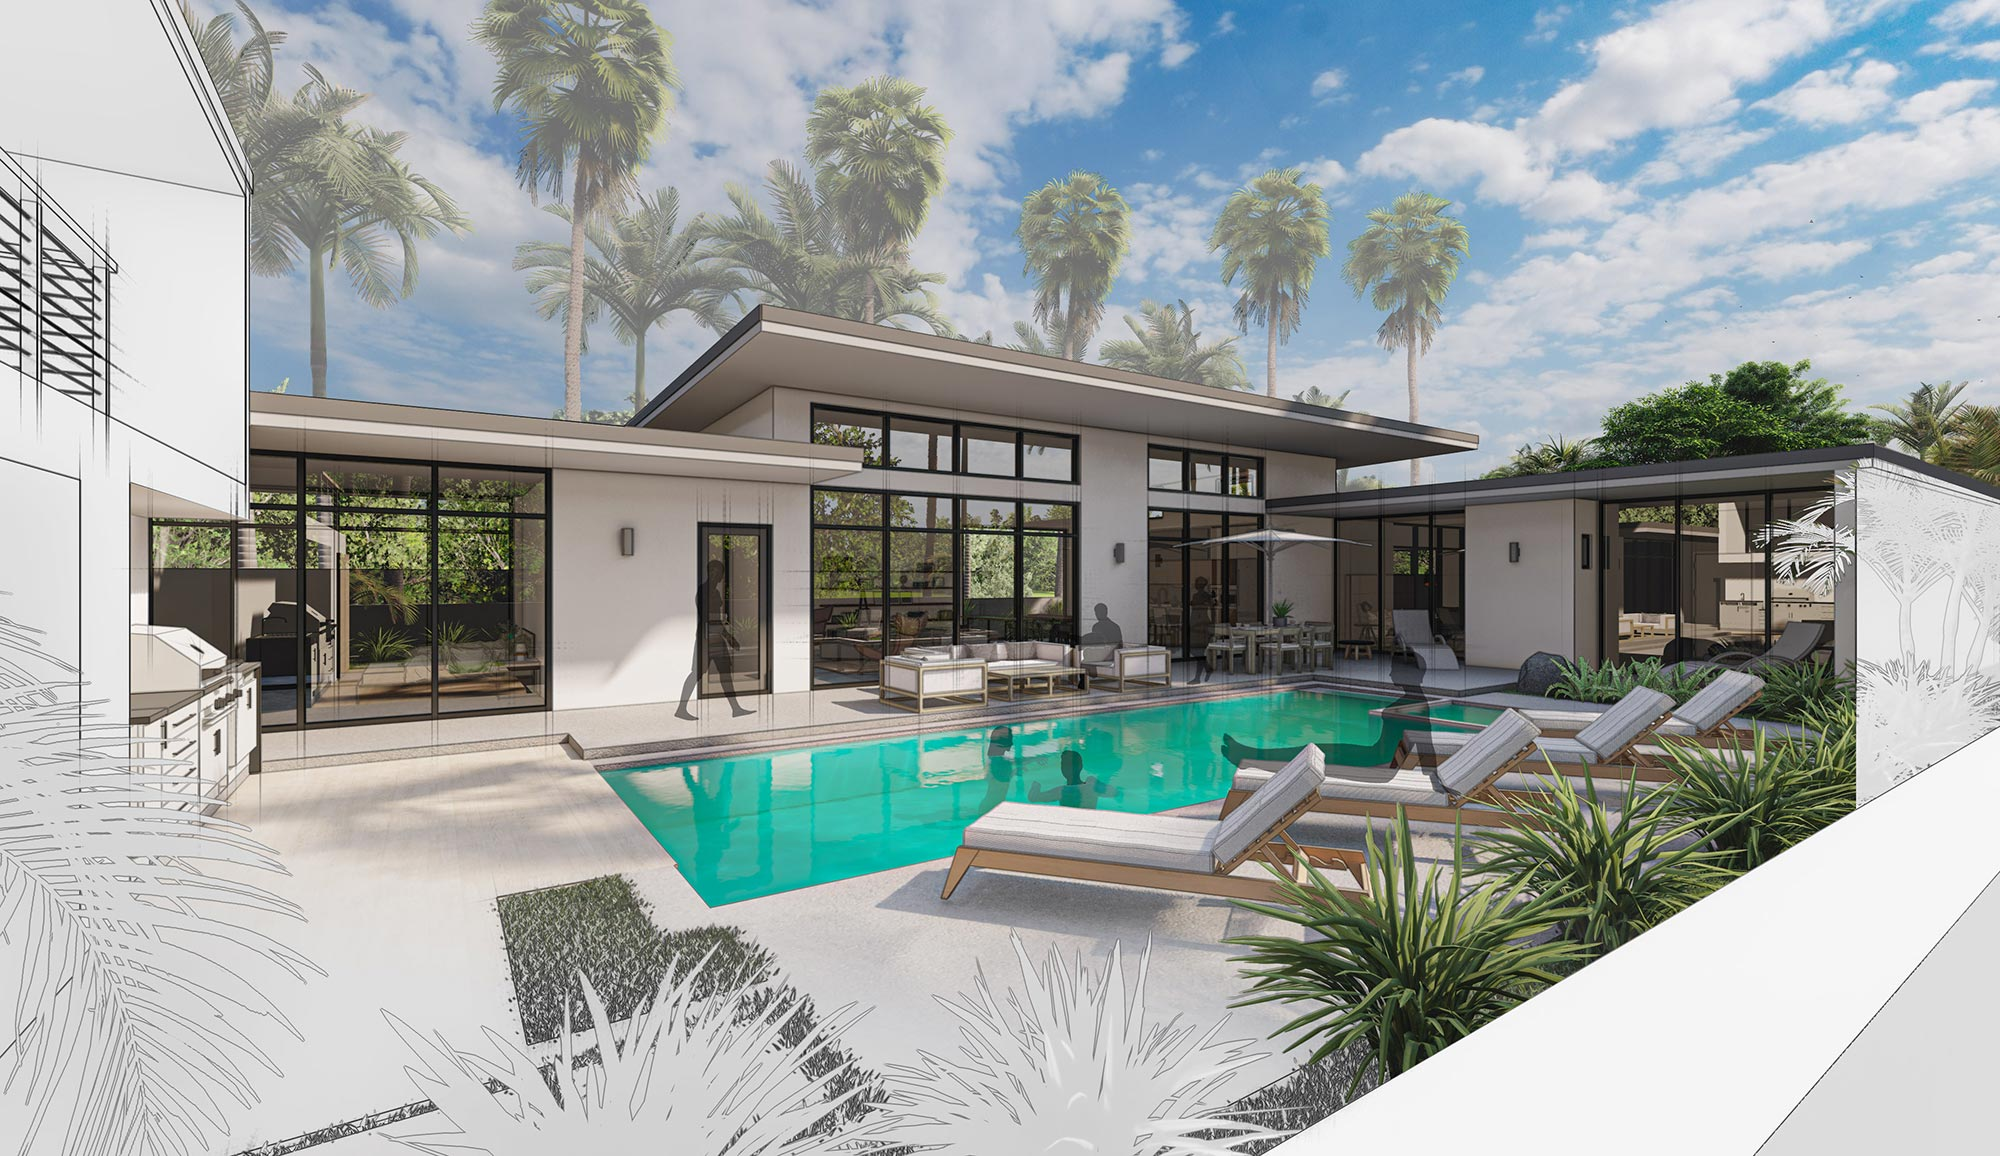 Concept rendering of pool deck with home beyond.